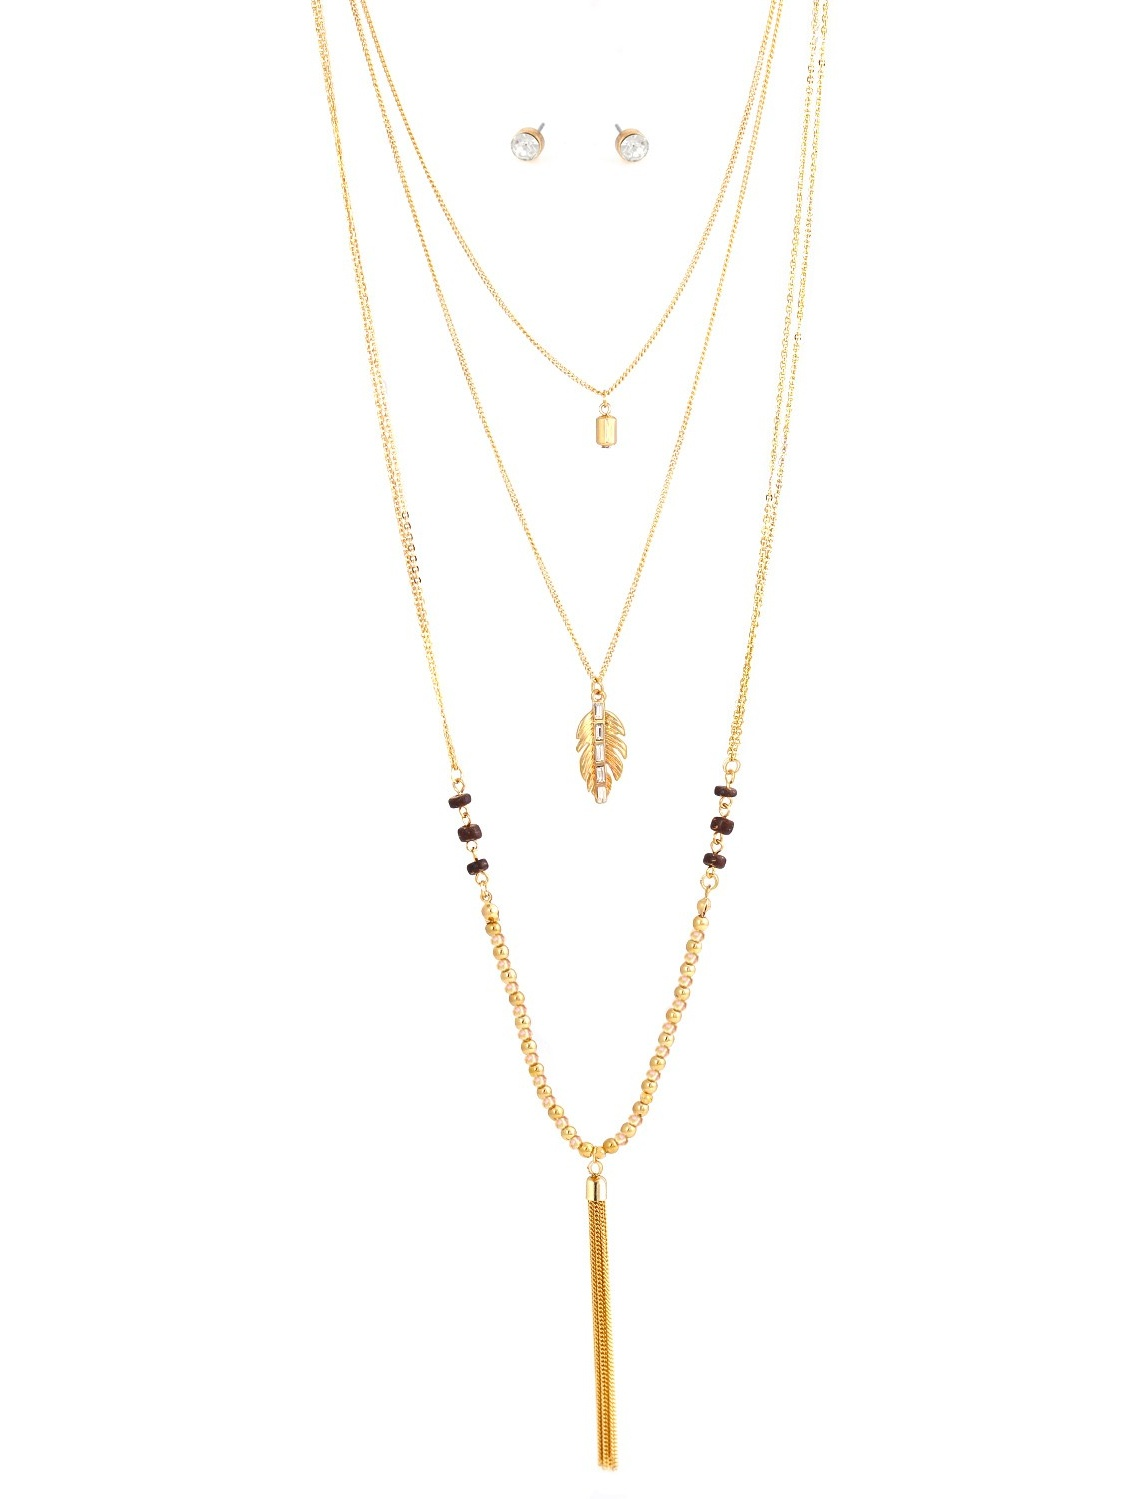 TAZZA WOMEN'S GOLD-TONE WOOD AND CRYSTAL LAYERED NECKLACE AND EARRING SET#S15816